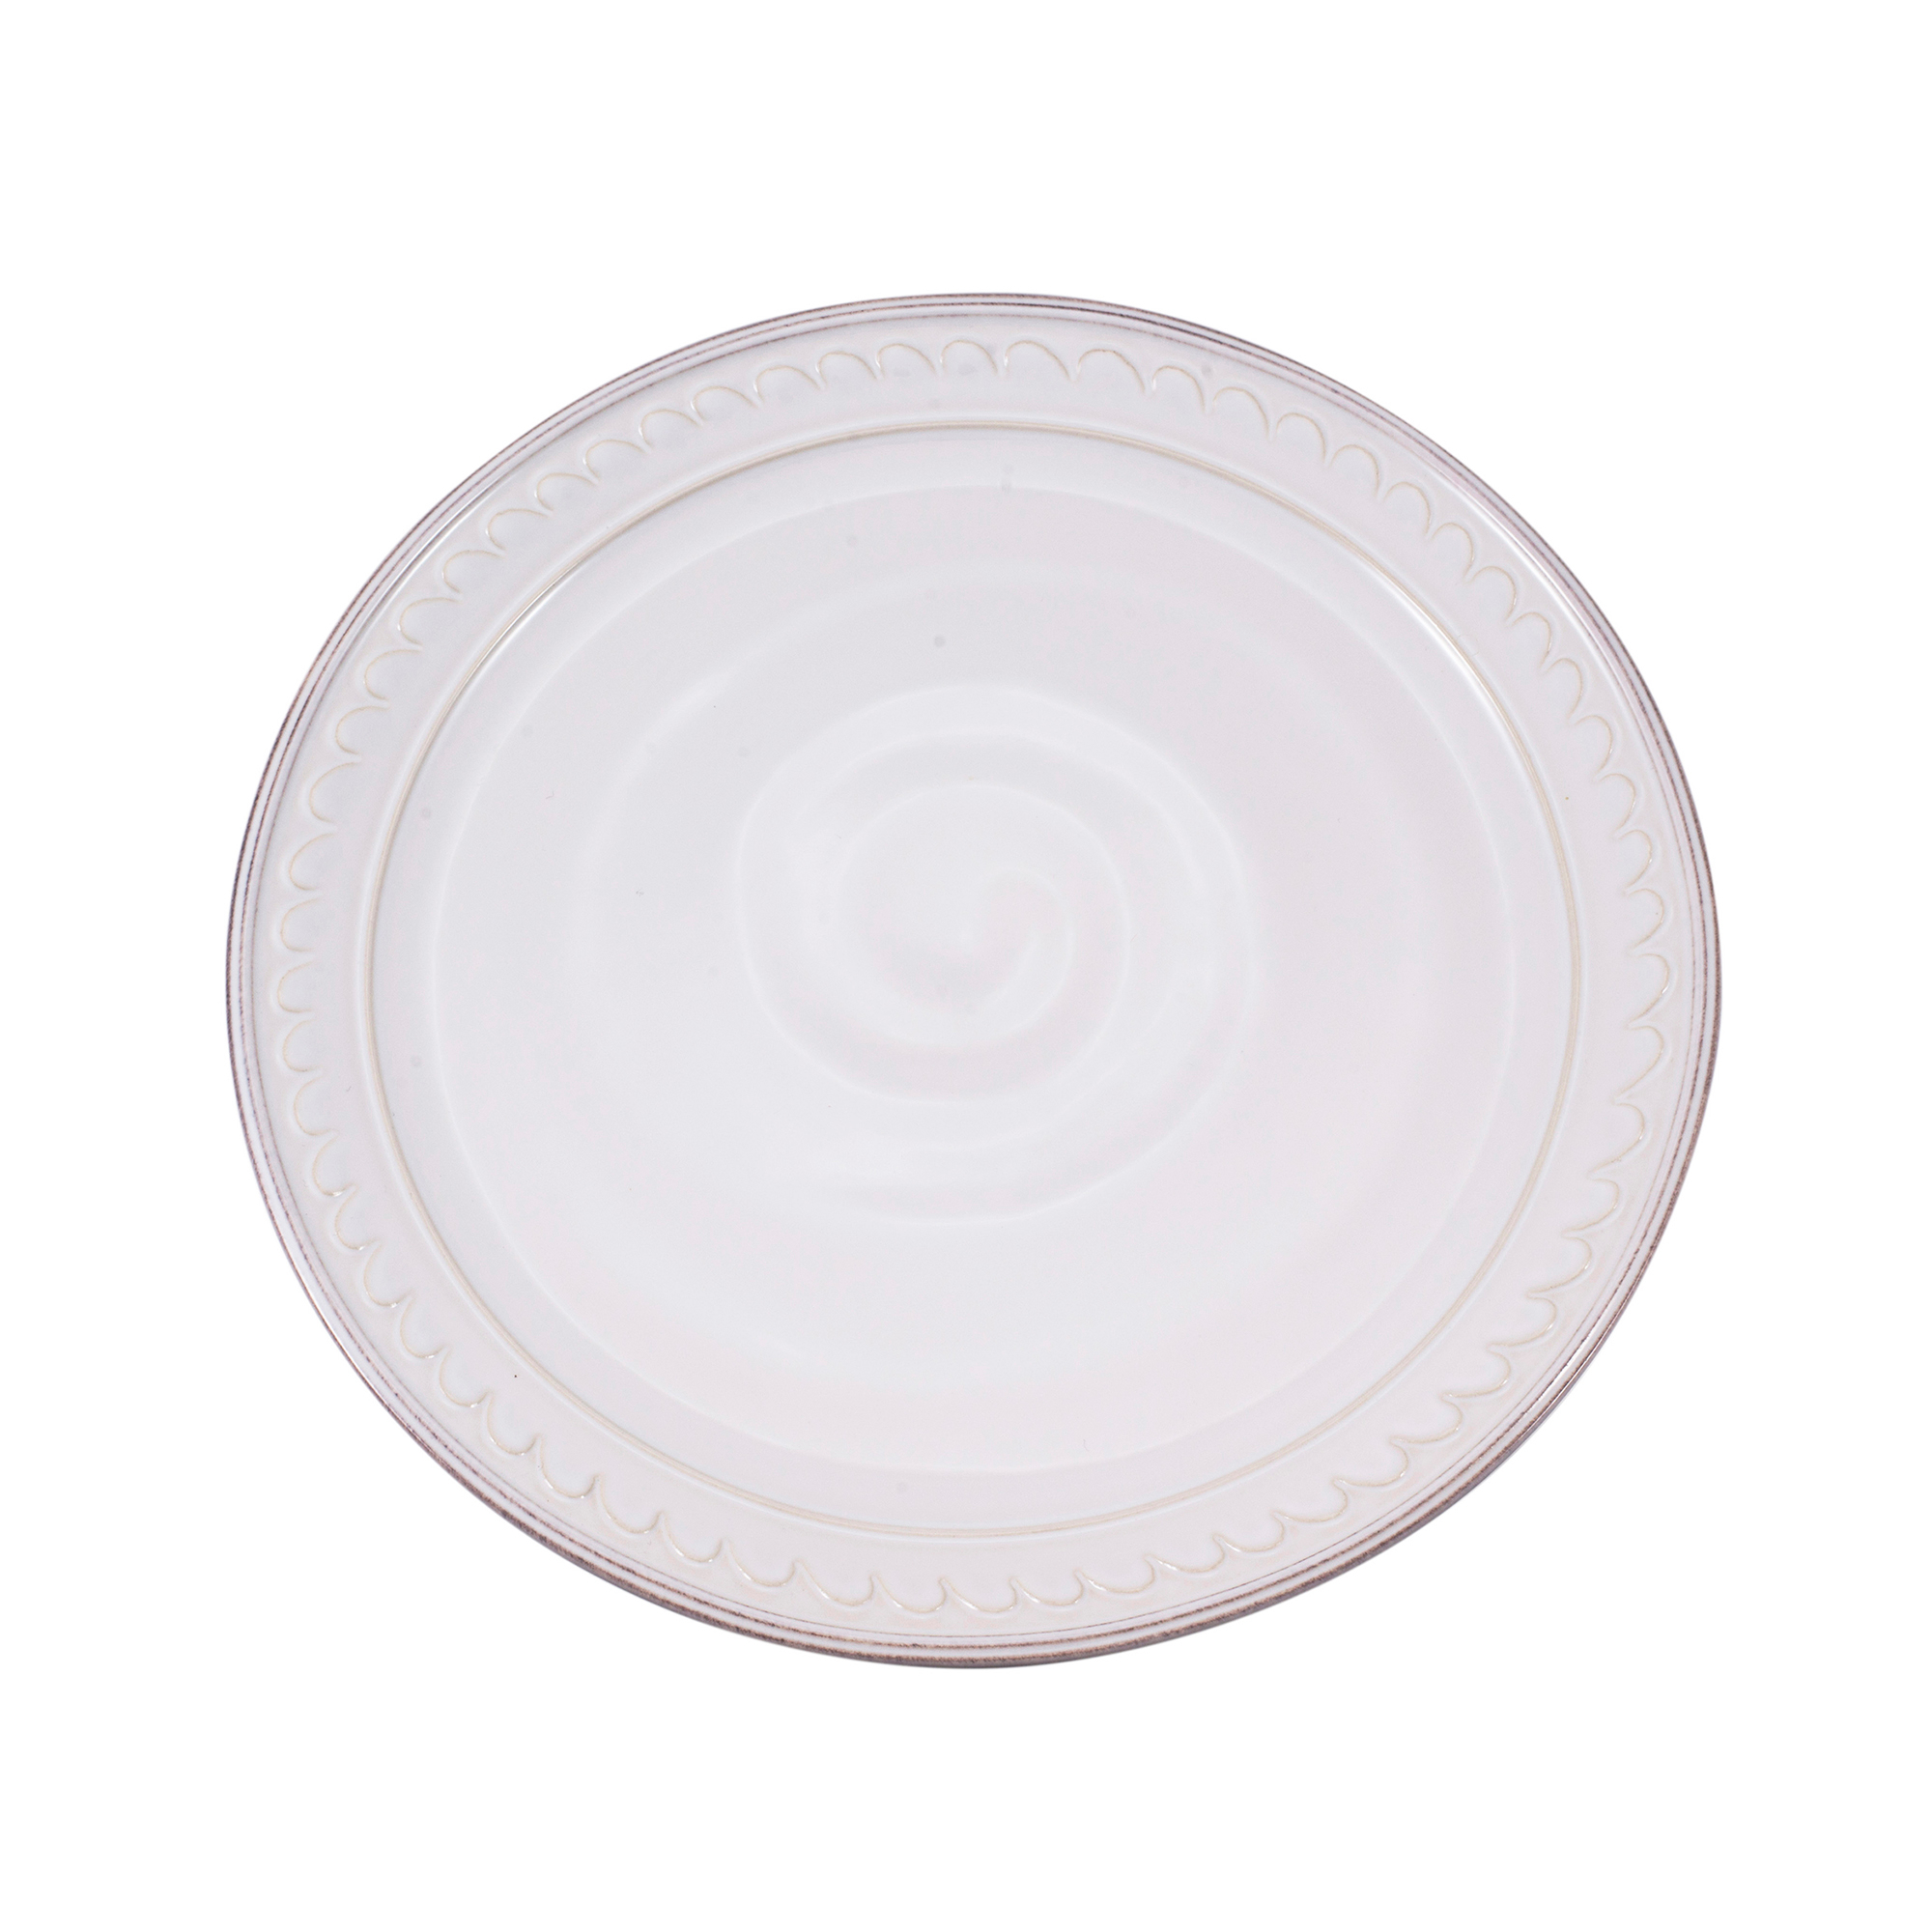 Simon Pearce Hartland Wave Salad Plate